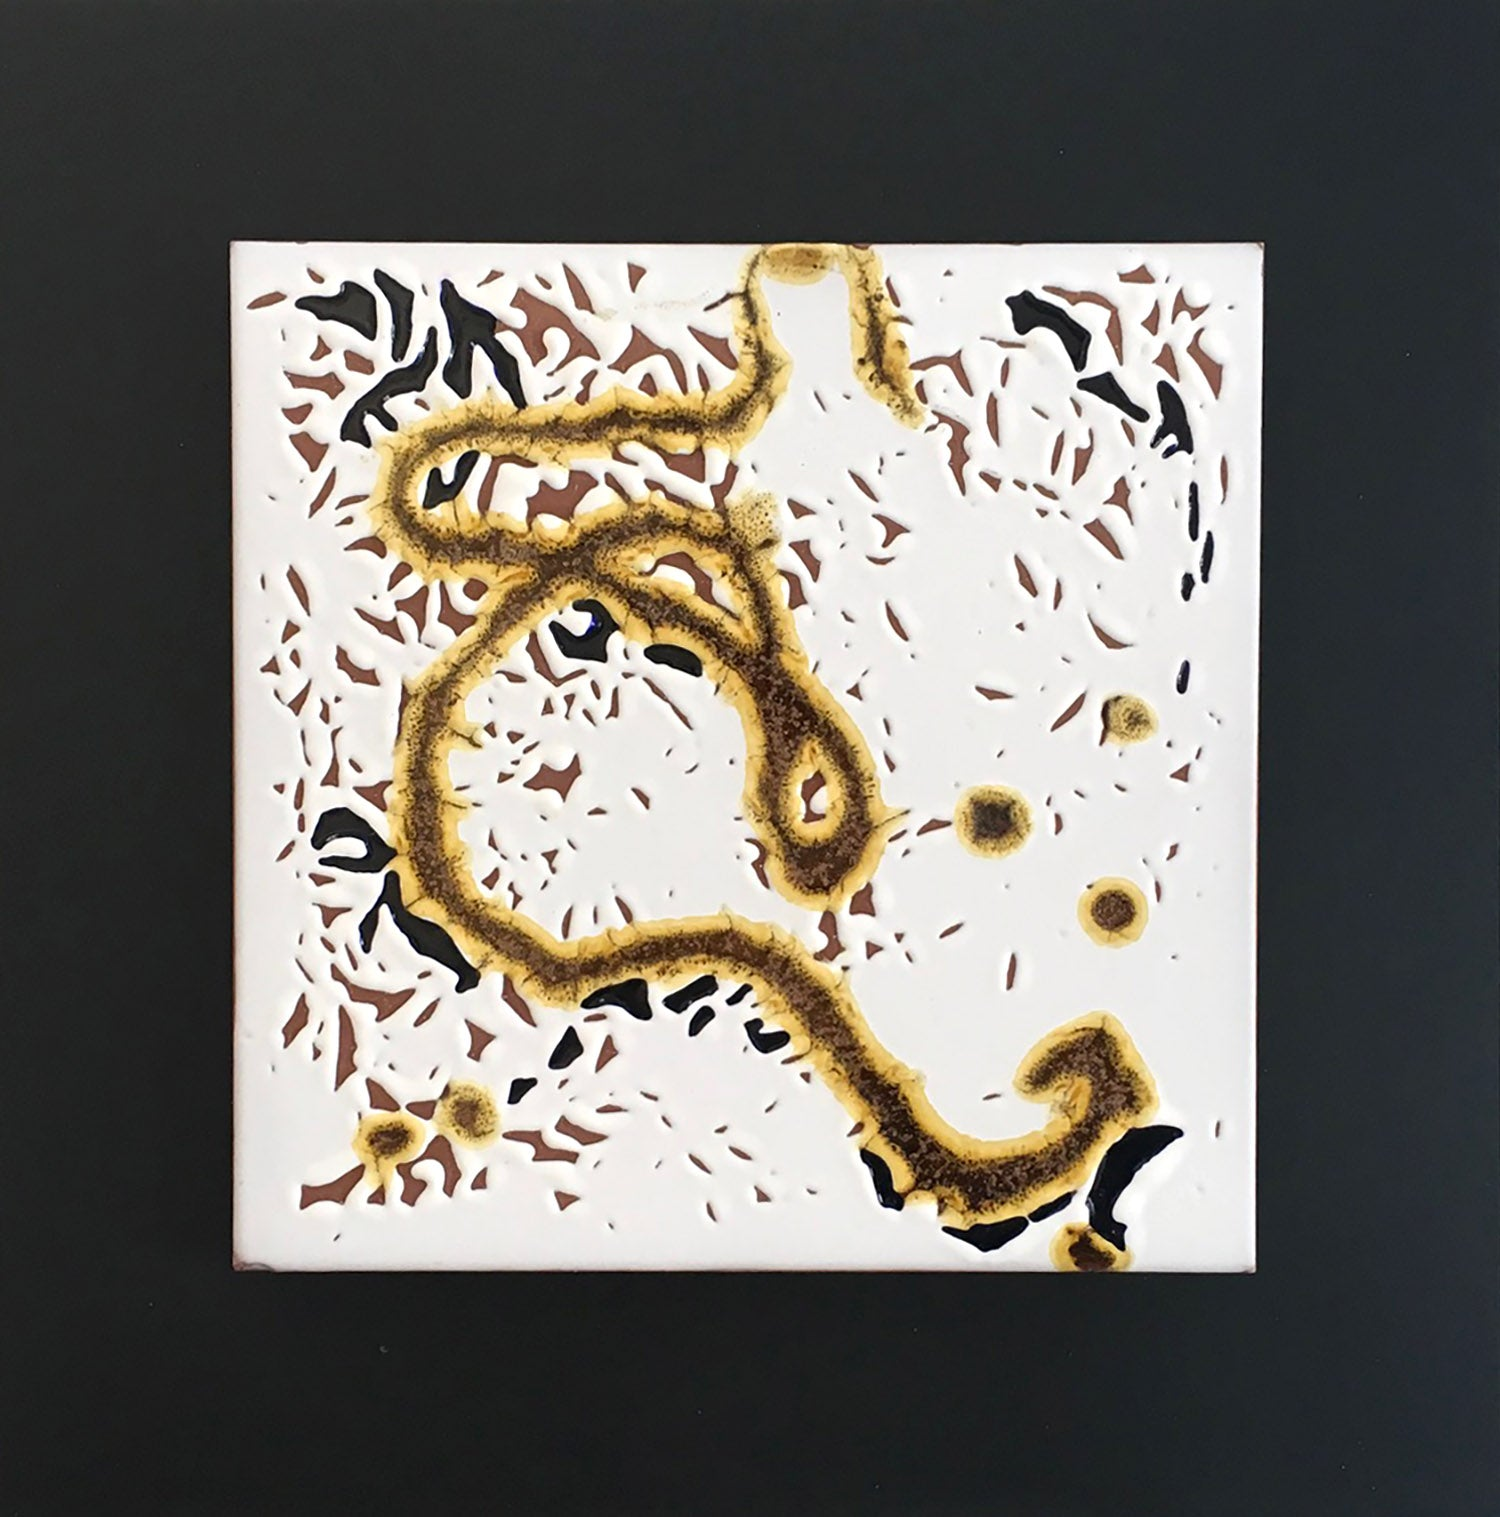 "EMBRACING IMPERFECTION I, Ceramic Tile on Steel, 12""H x 12""W, 2020"